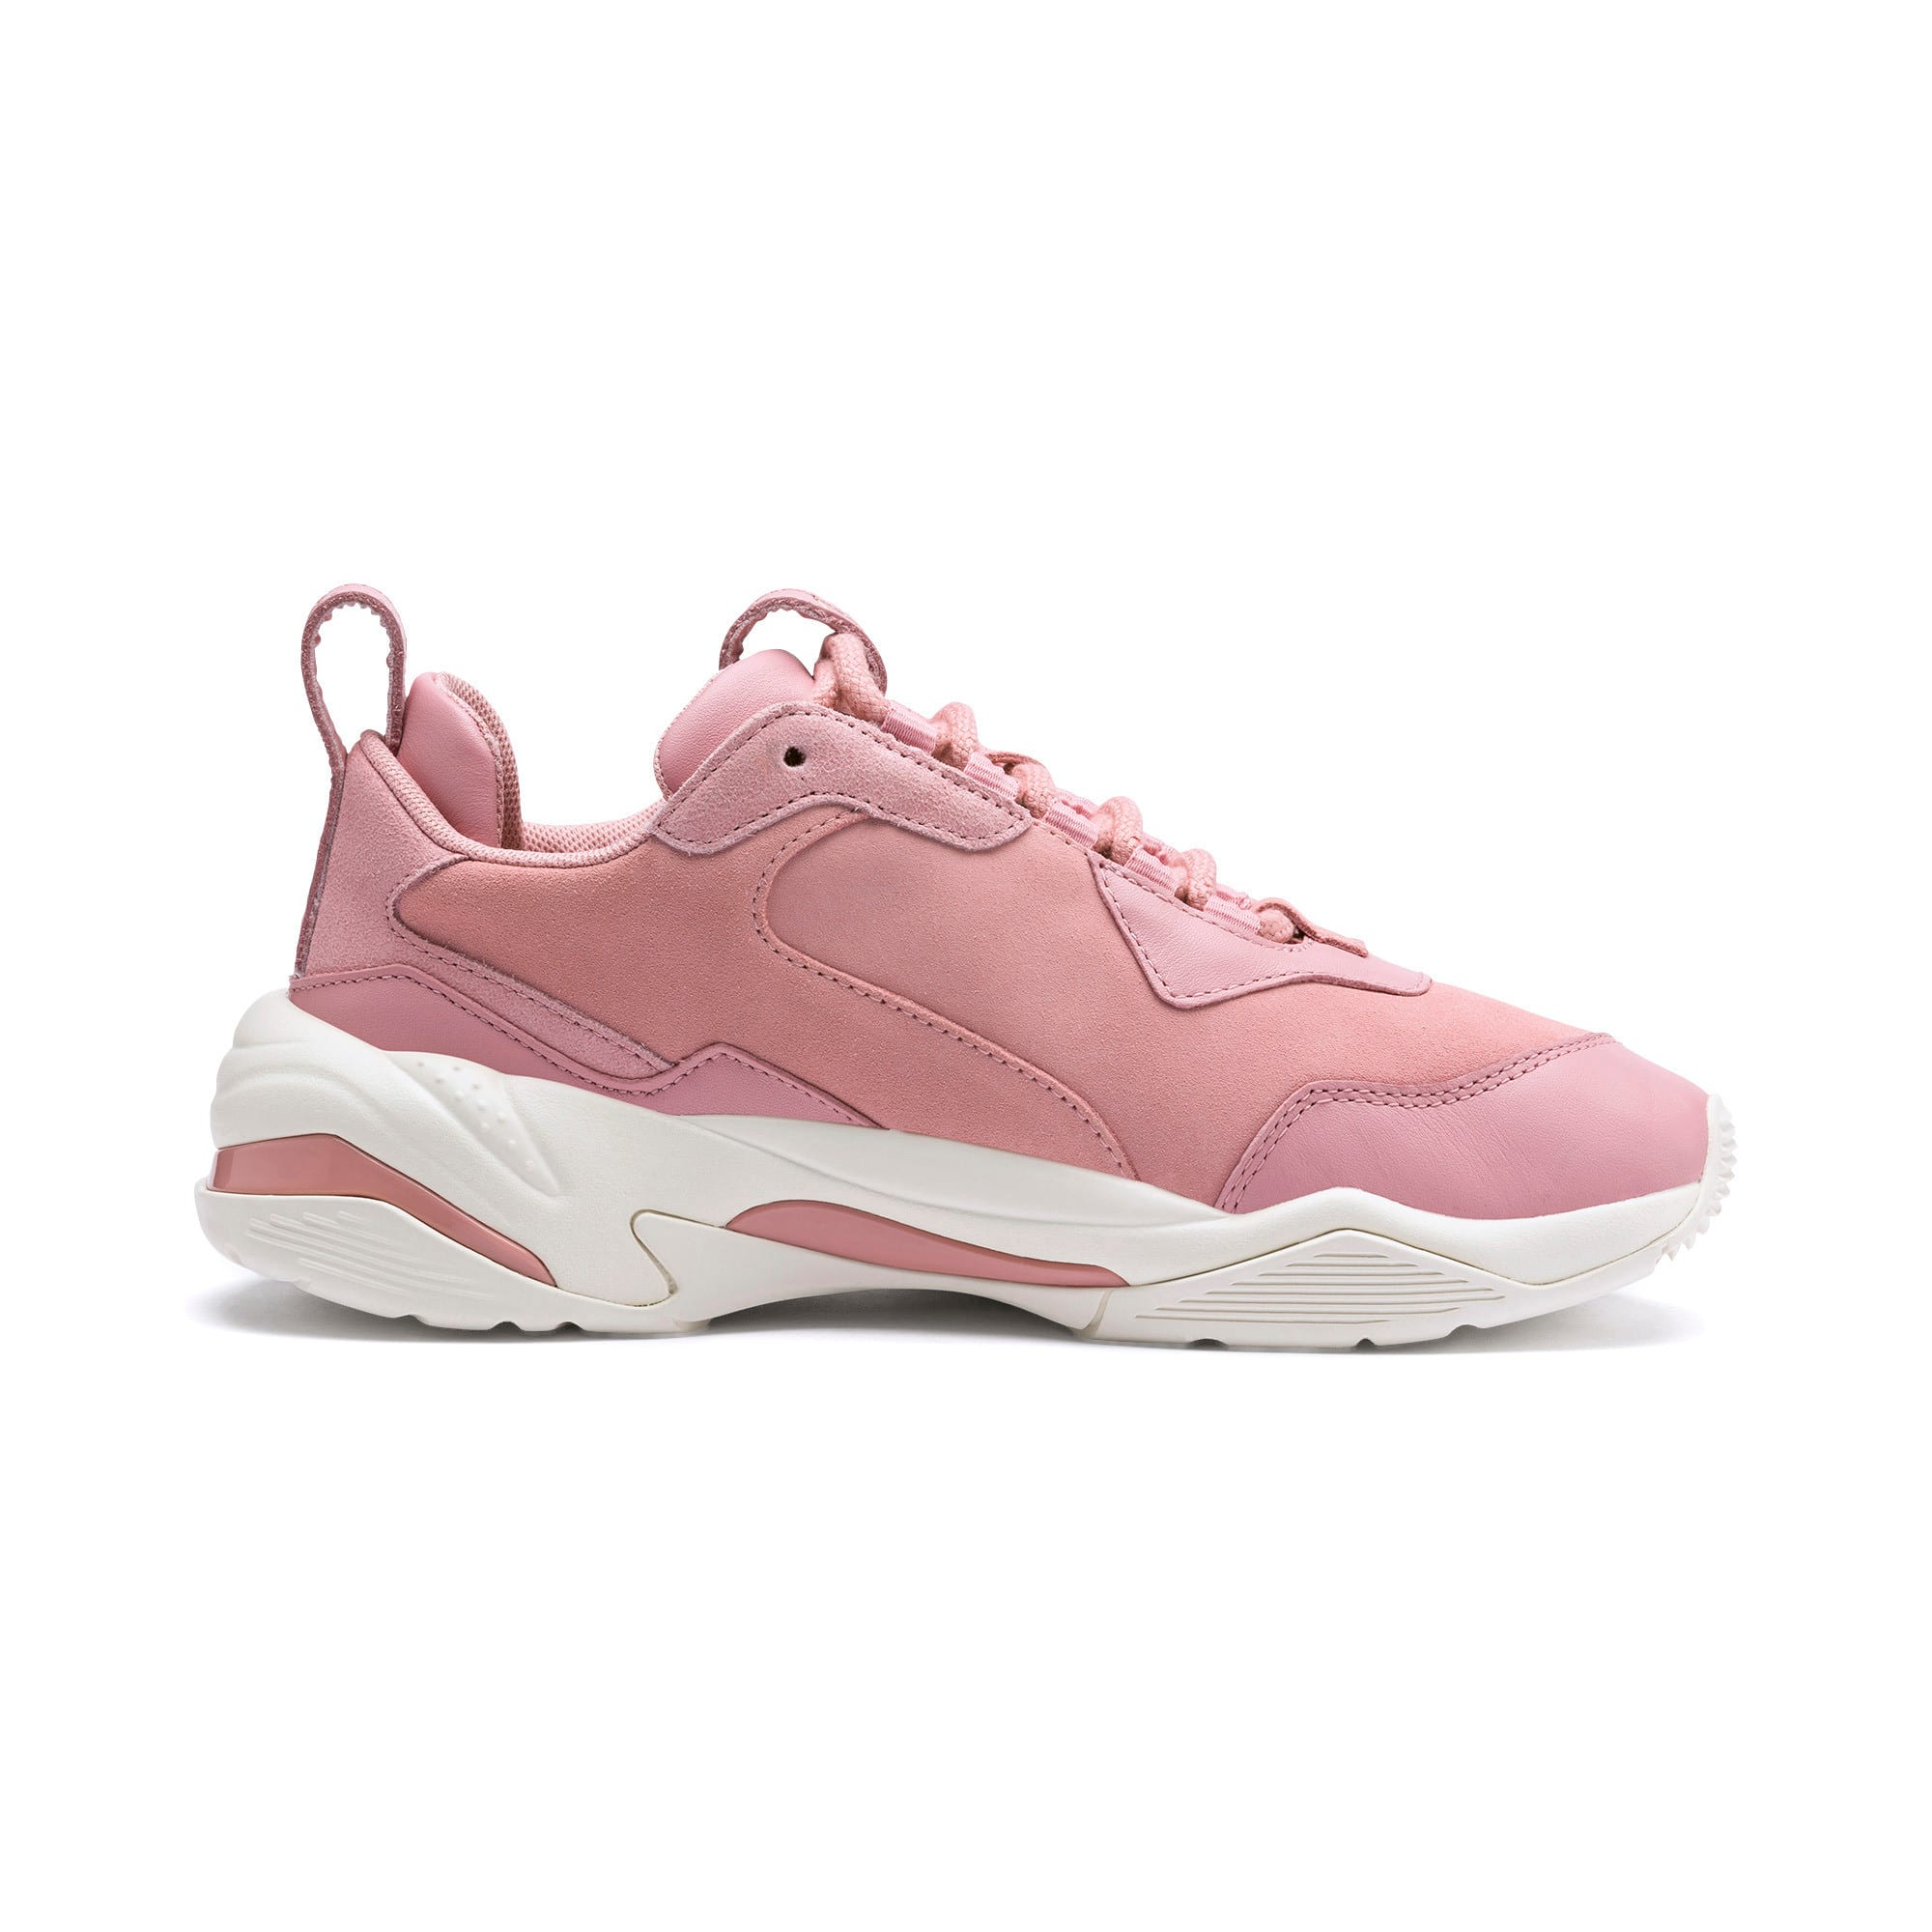 Thunder Fire Rose Women's Sneakers, Bridal Rose-Puma Team Gold, large